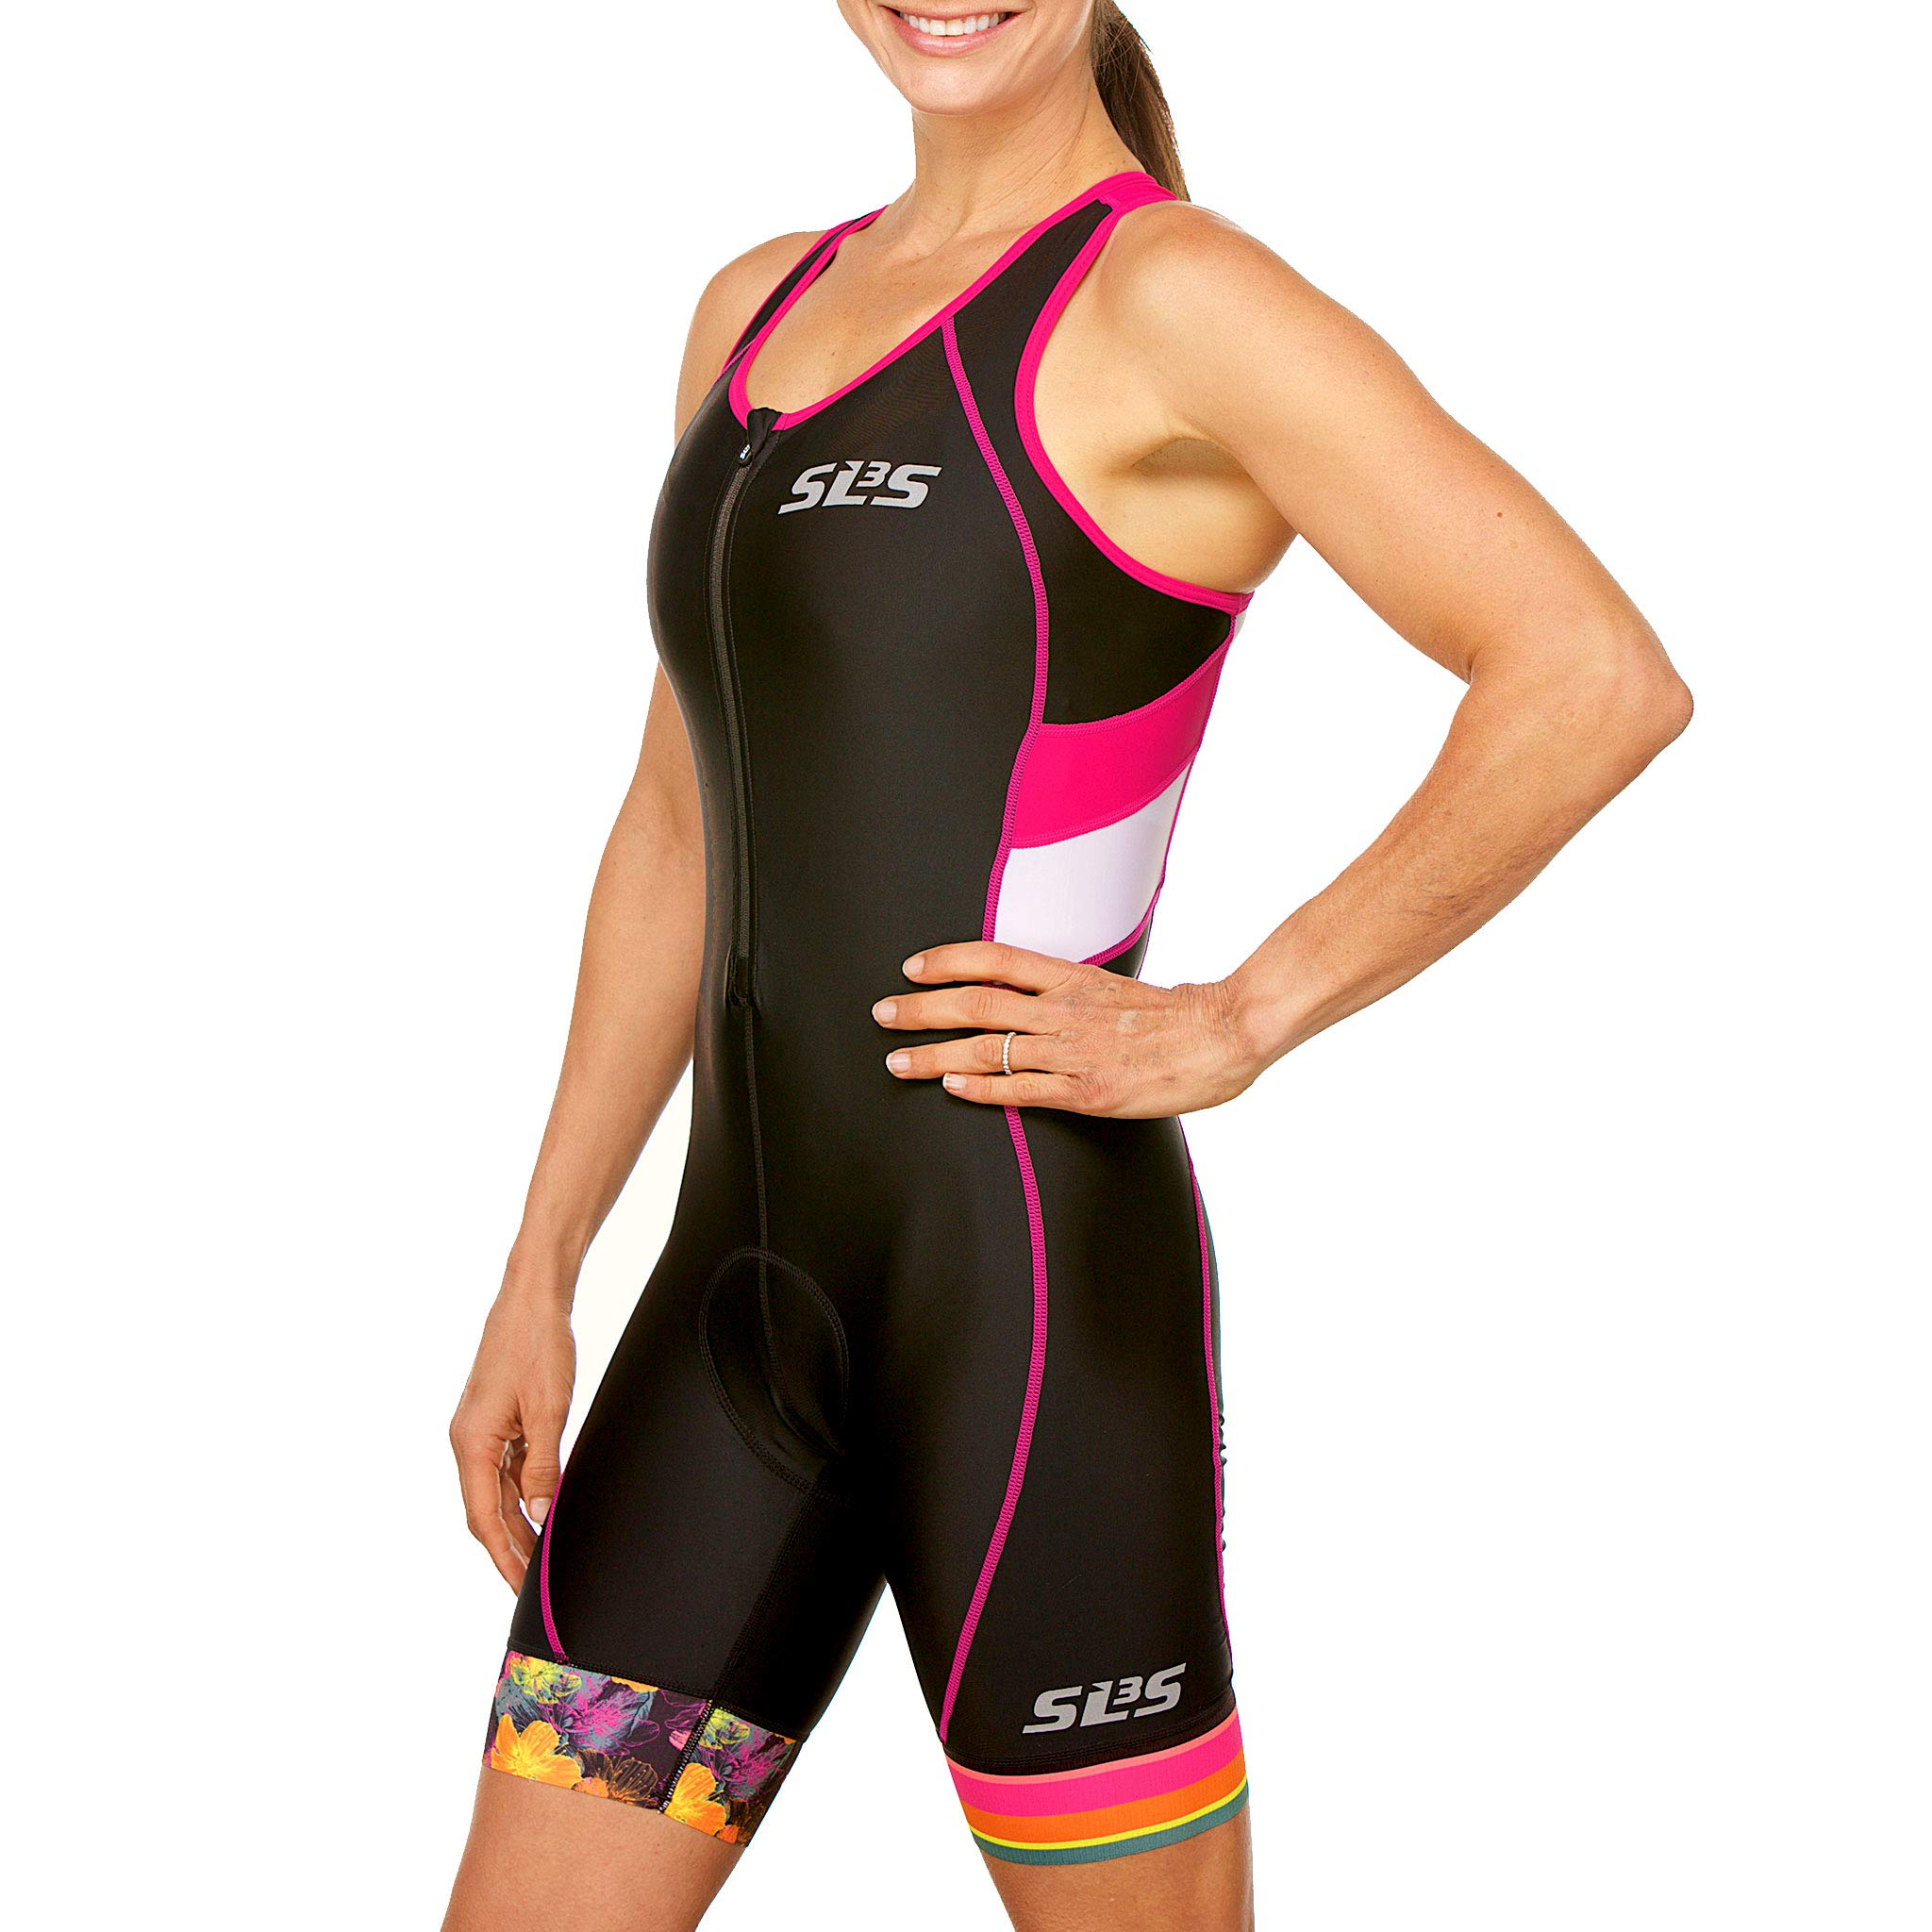 SLS3 Women`s Triathlon Suit FX | Womens Trisuits | 1 Pocket Triathlon Gear Suits Women | Anti-Friction Seams Womens Tri Suit | German Designed (Black/Bright Rose, M) by SLS3 (Image #3)